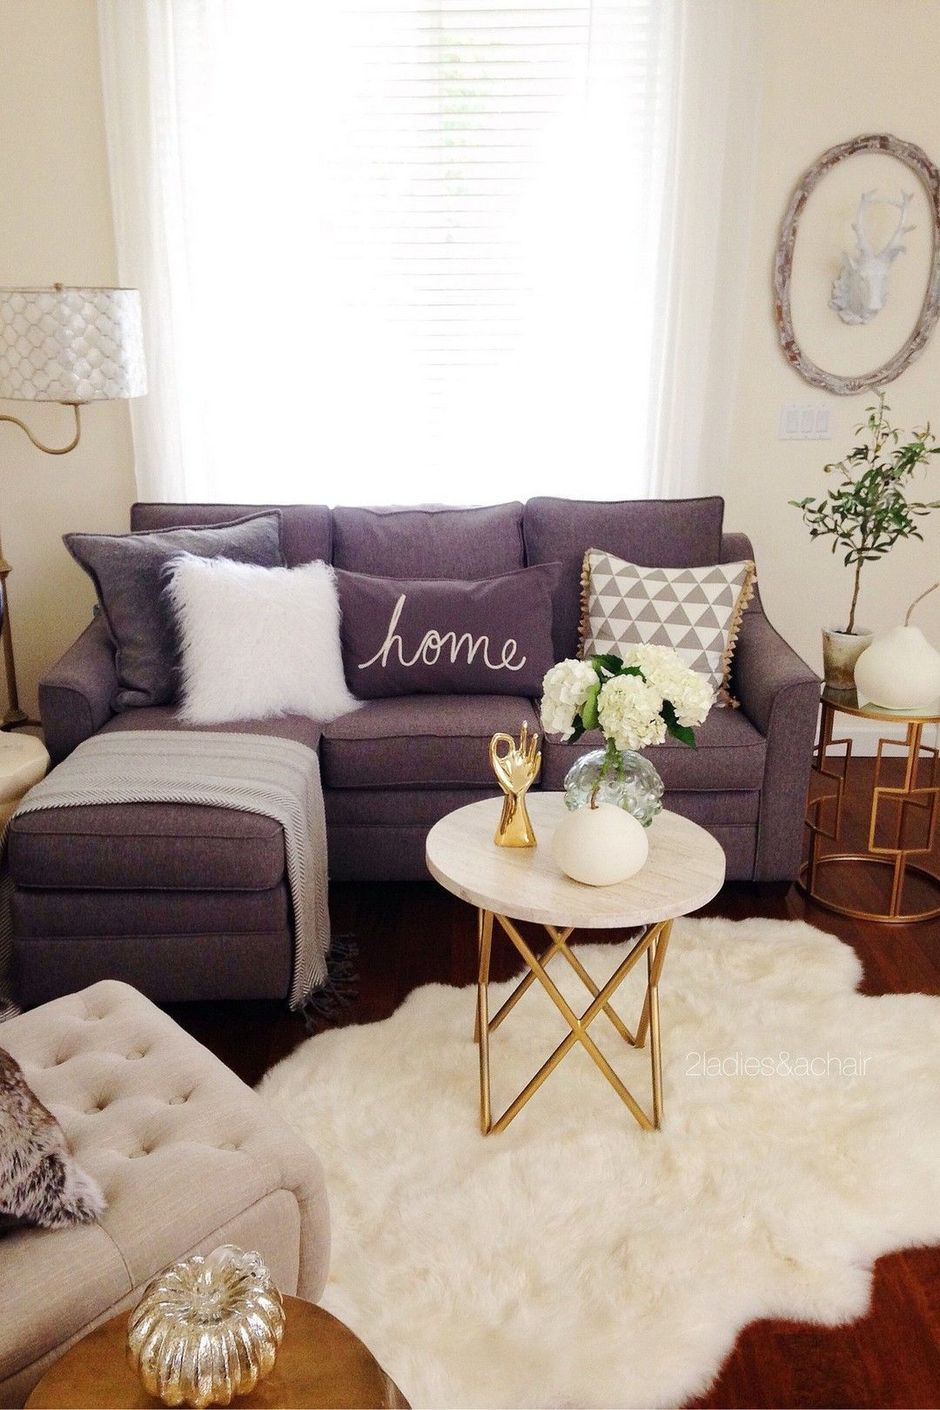 90 Suggestion How To Make Simple Apartment Decorations On